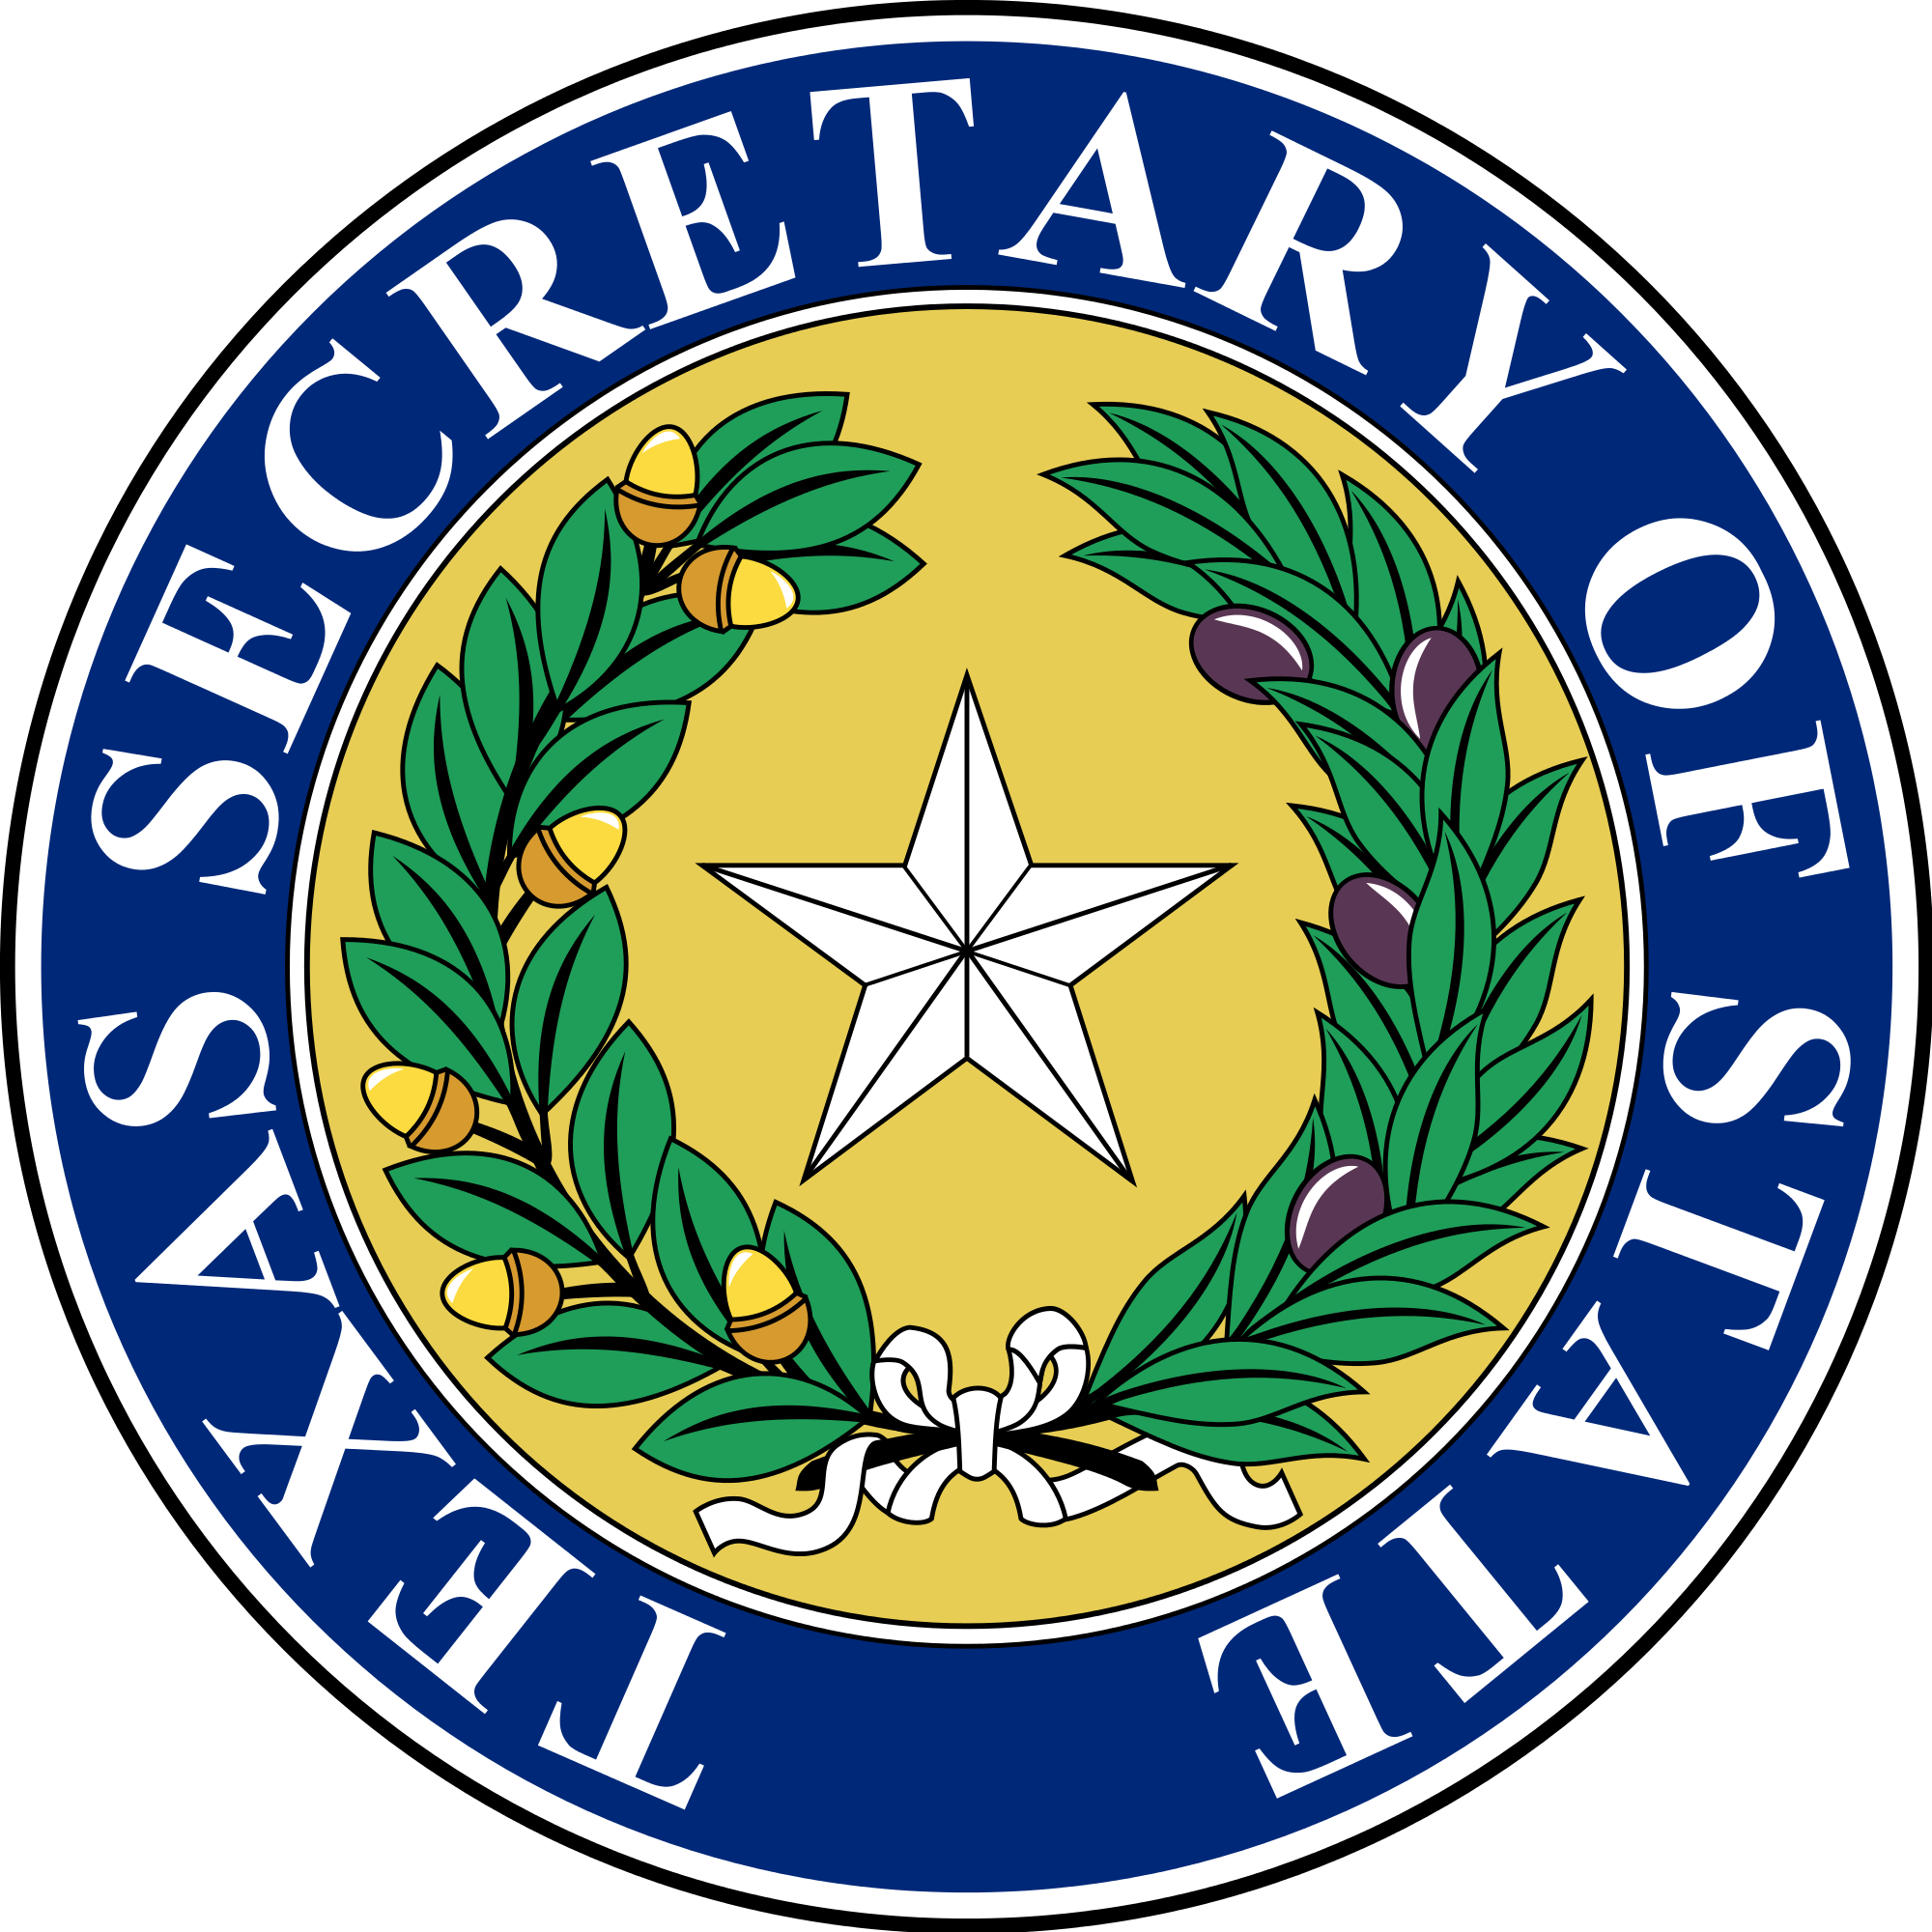 Department of state seal png. Texas secretary texaslawhelp org